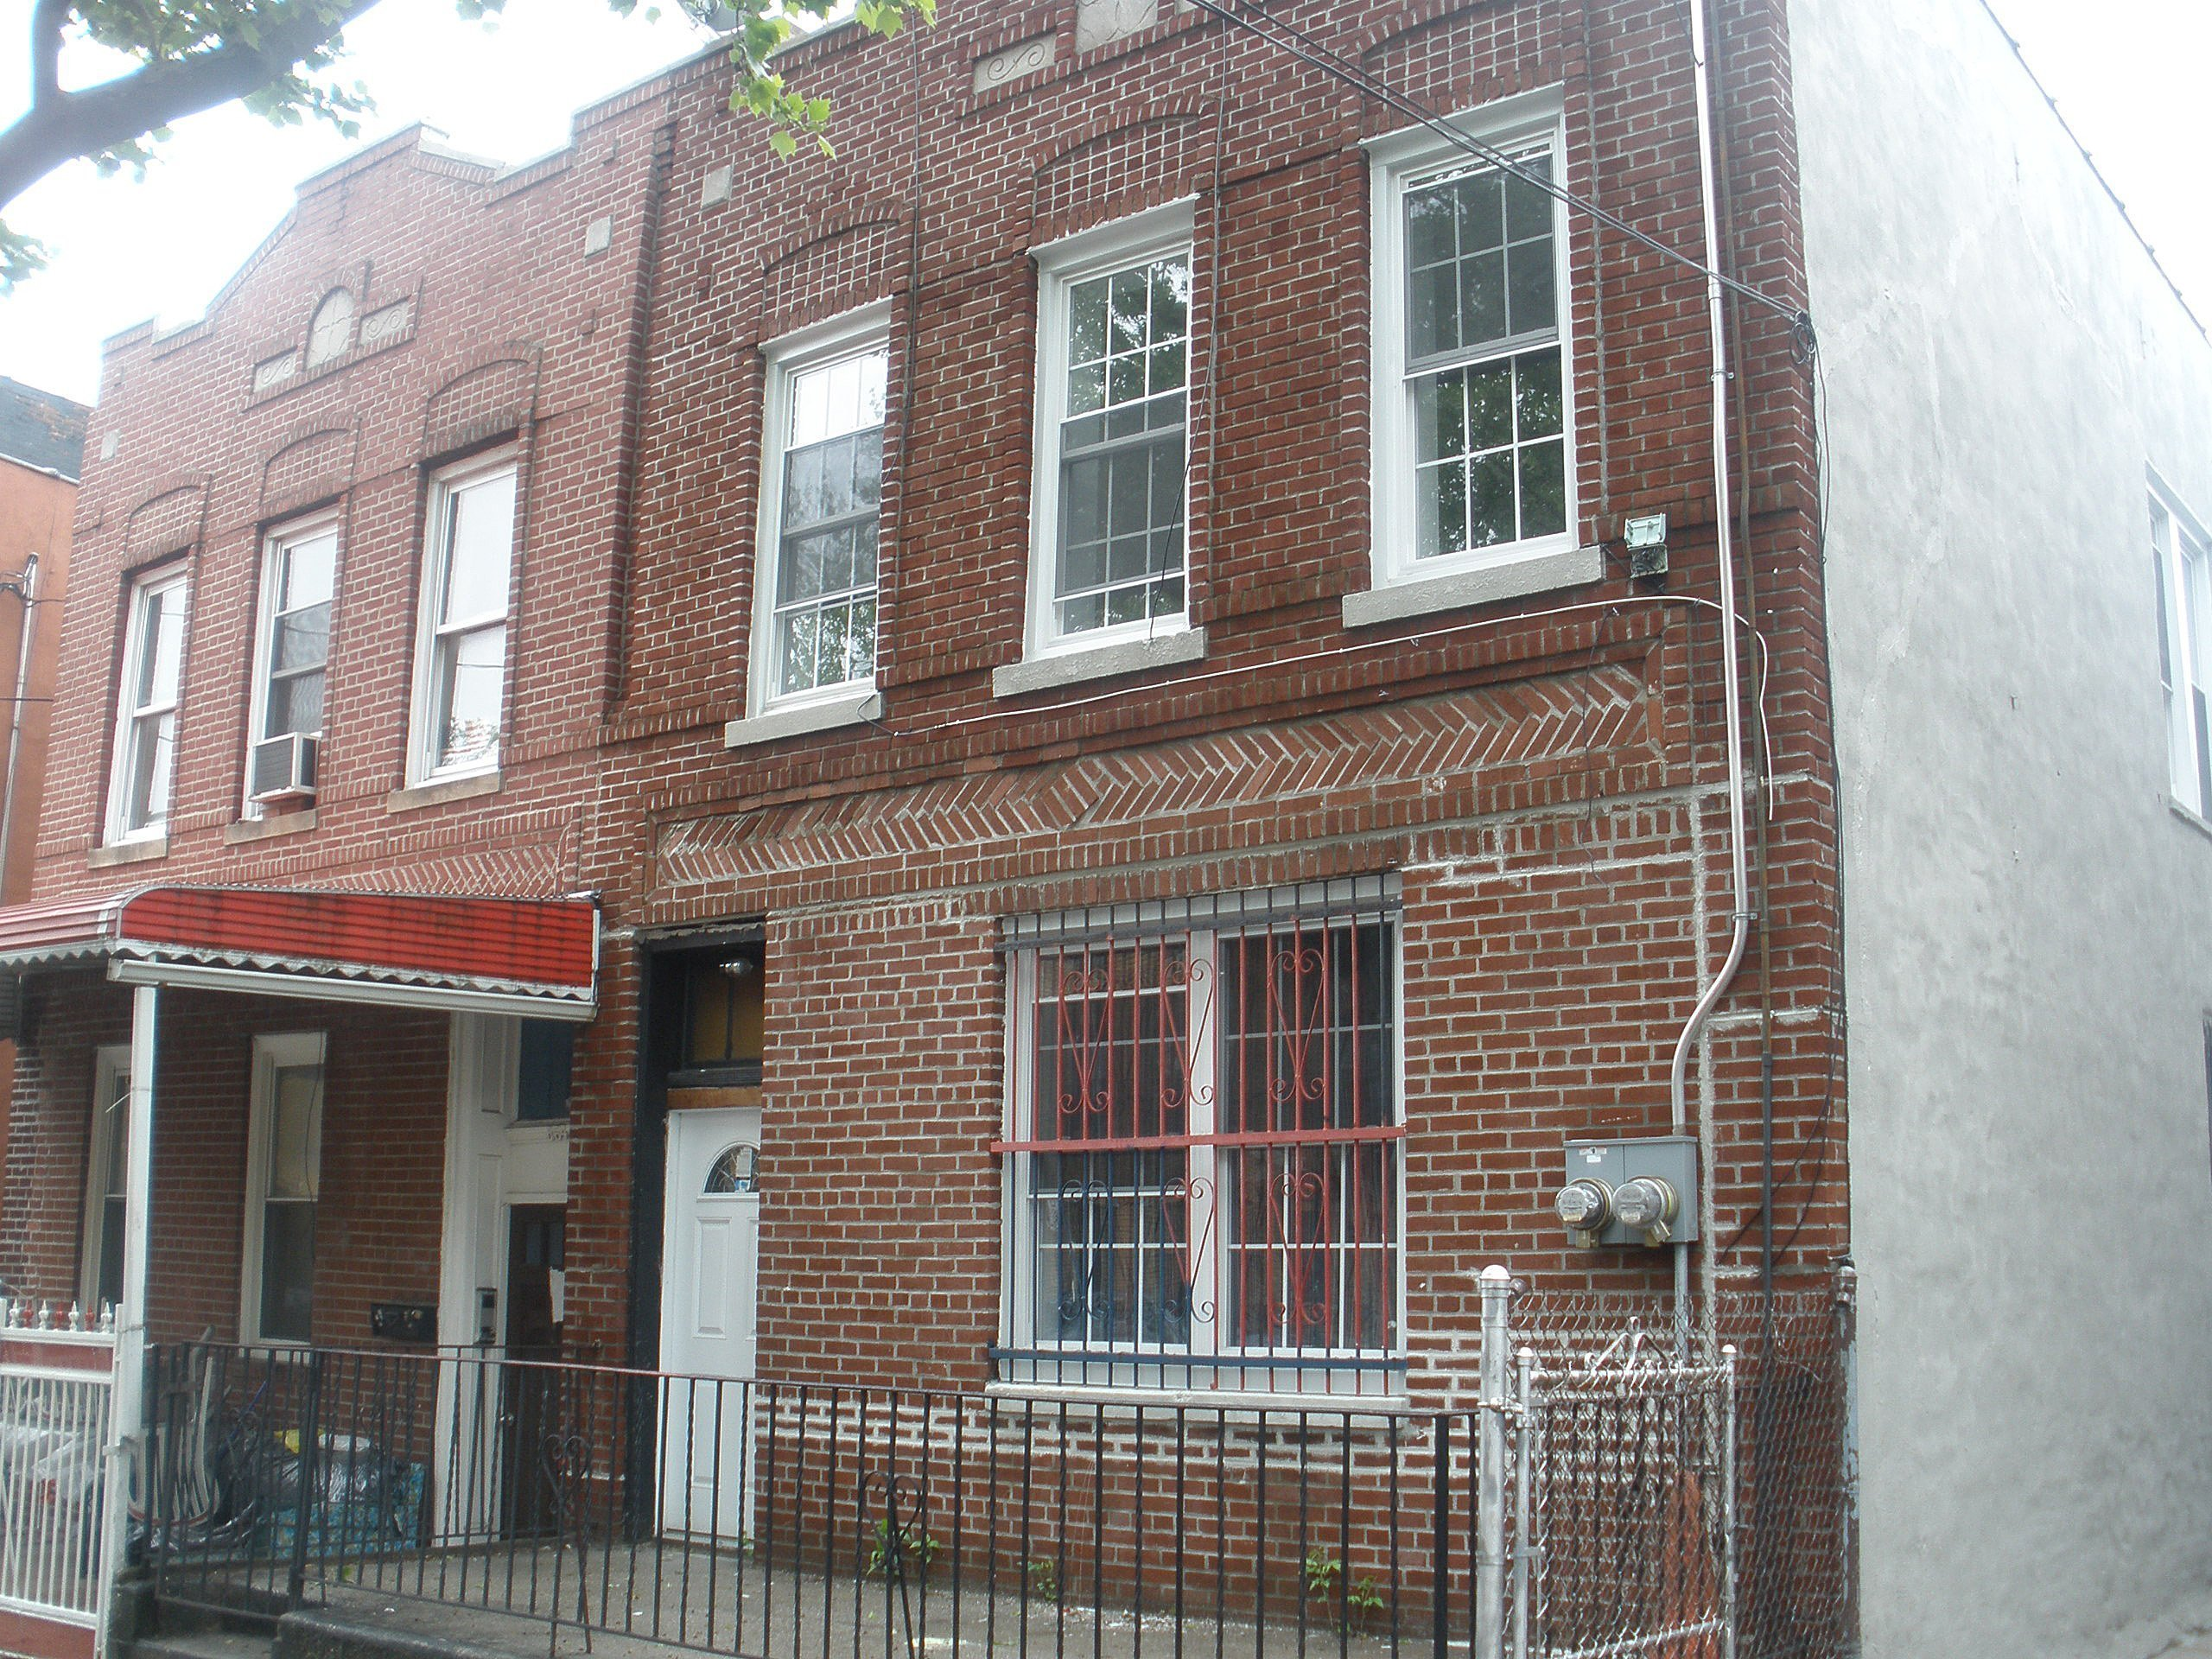 2 family brownsville house for sale brooklyn crg1060 for Sale house in brooklyn